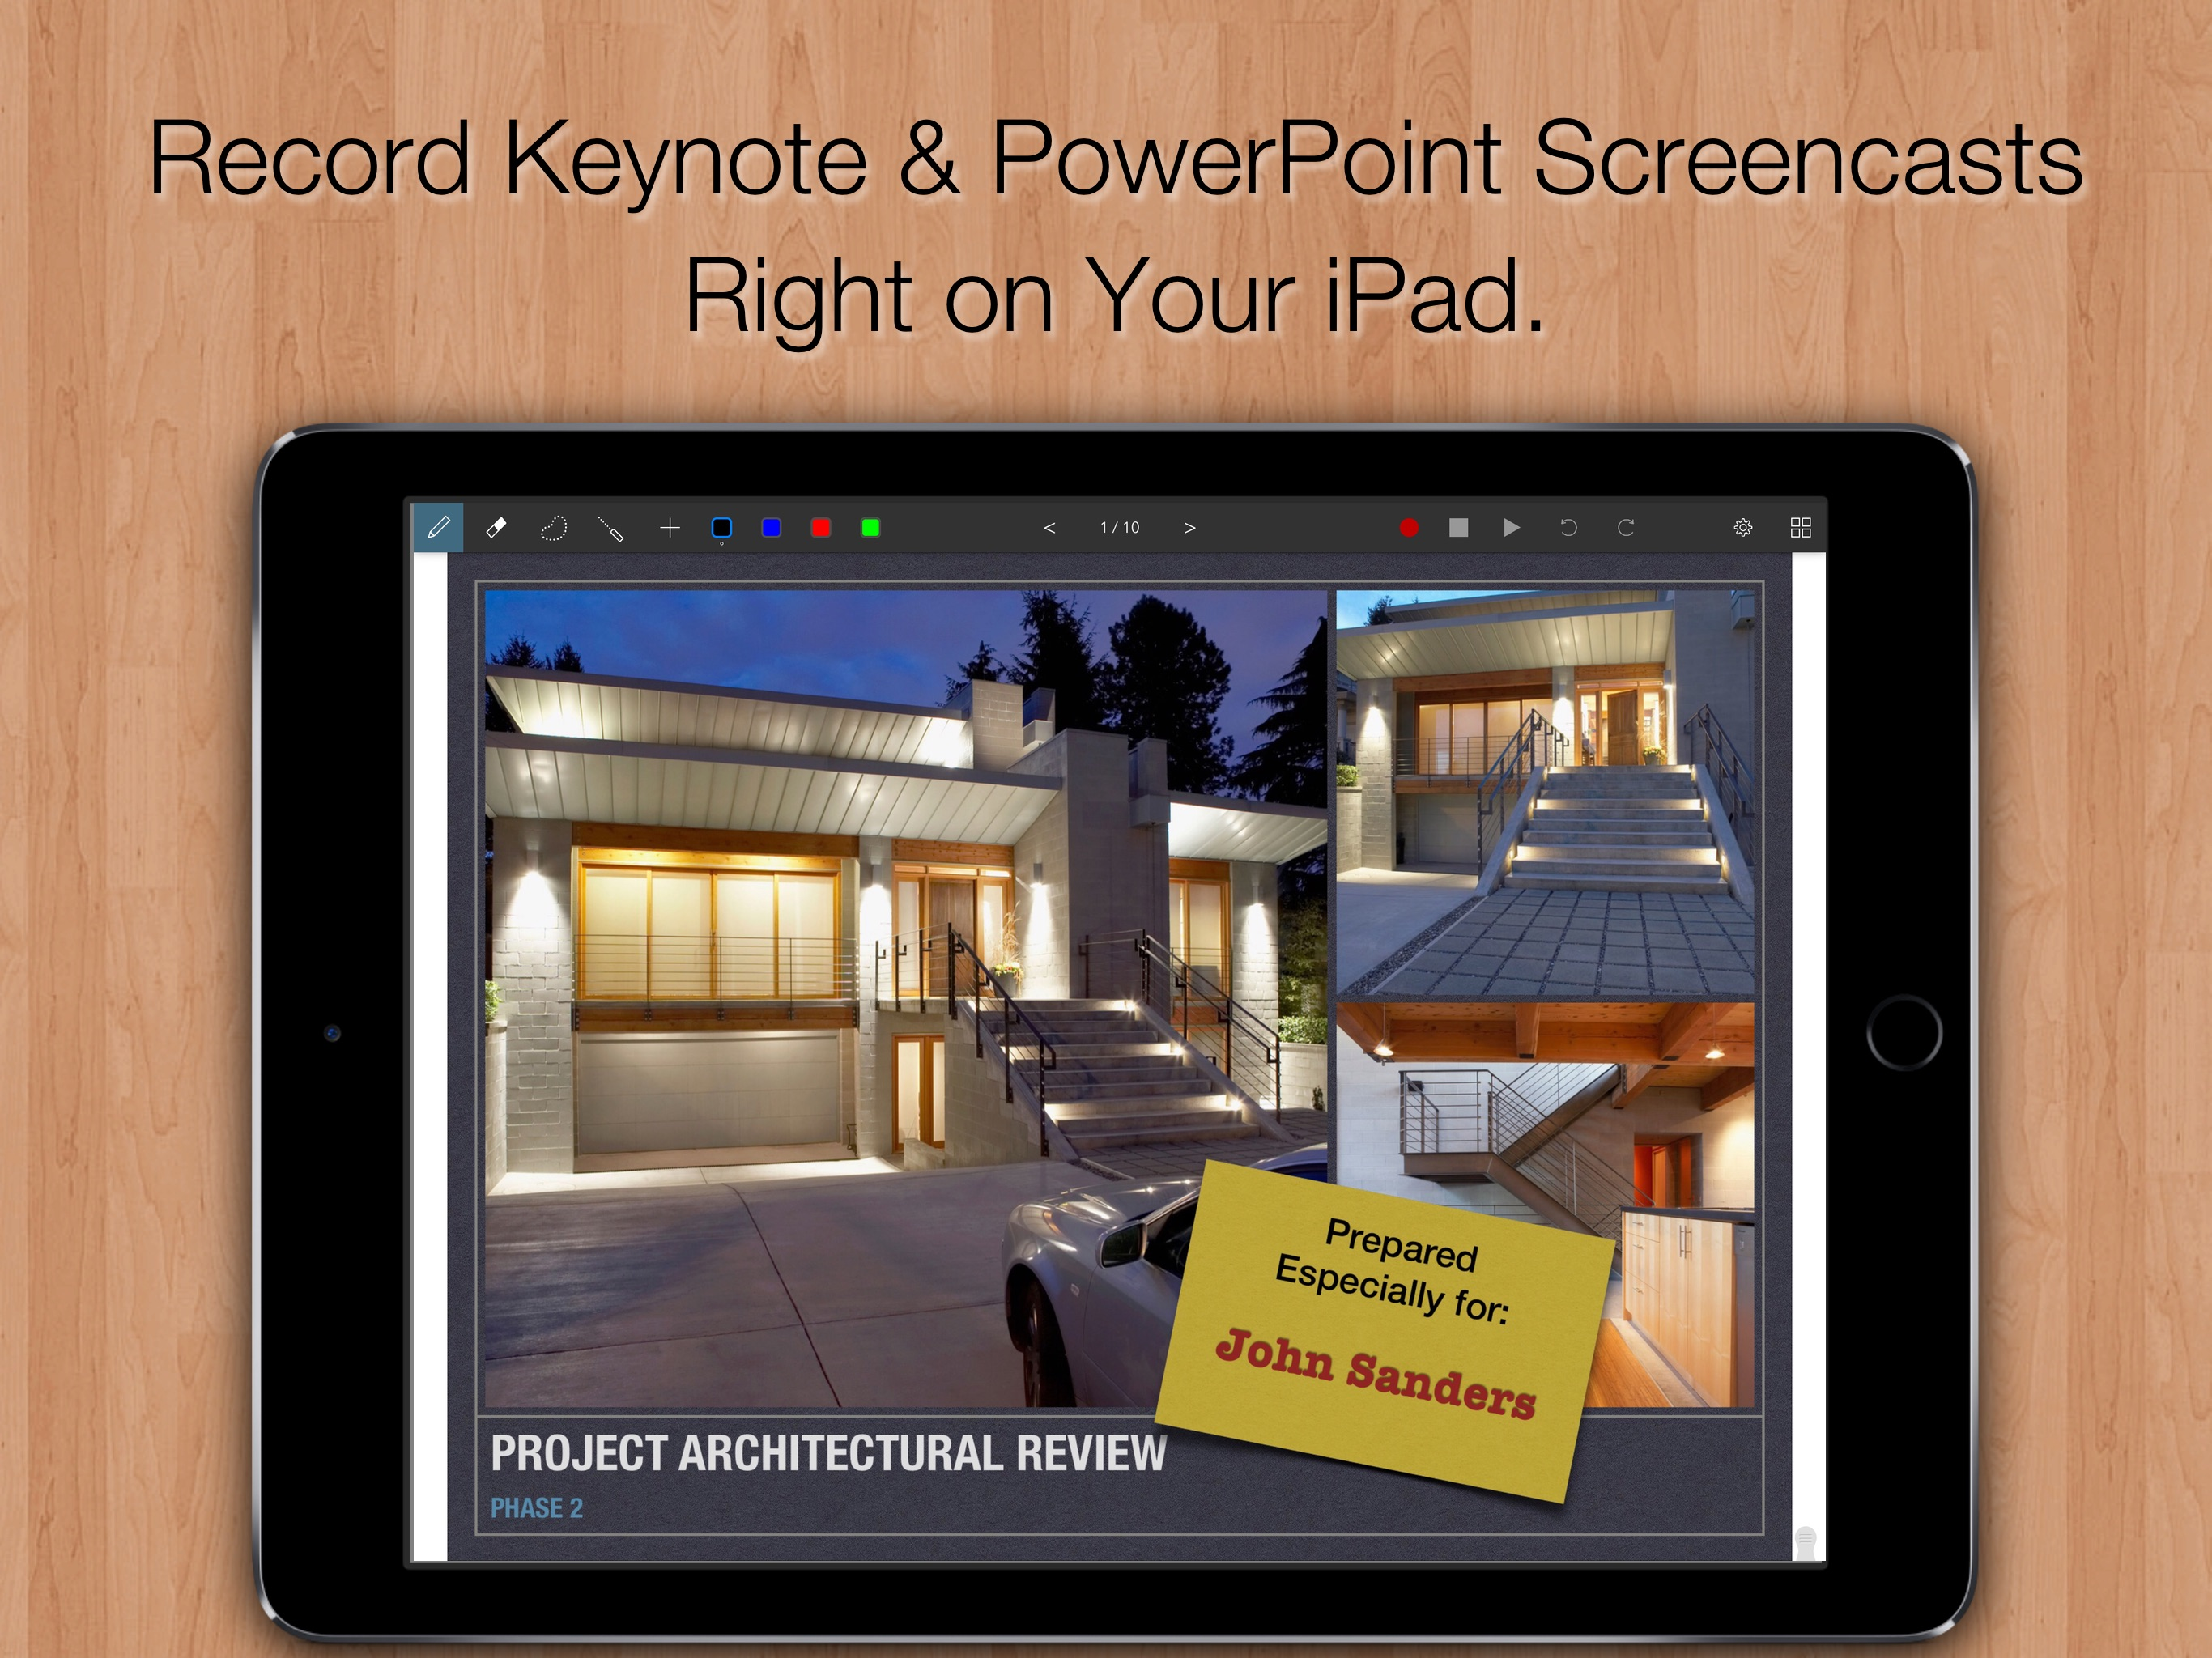 Slidecast: PowerPoint and Keynote Whiteboard Video